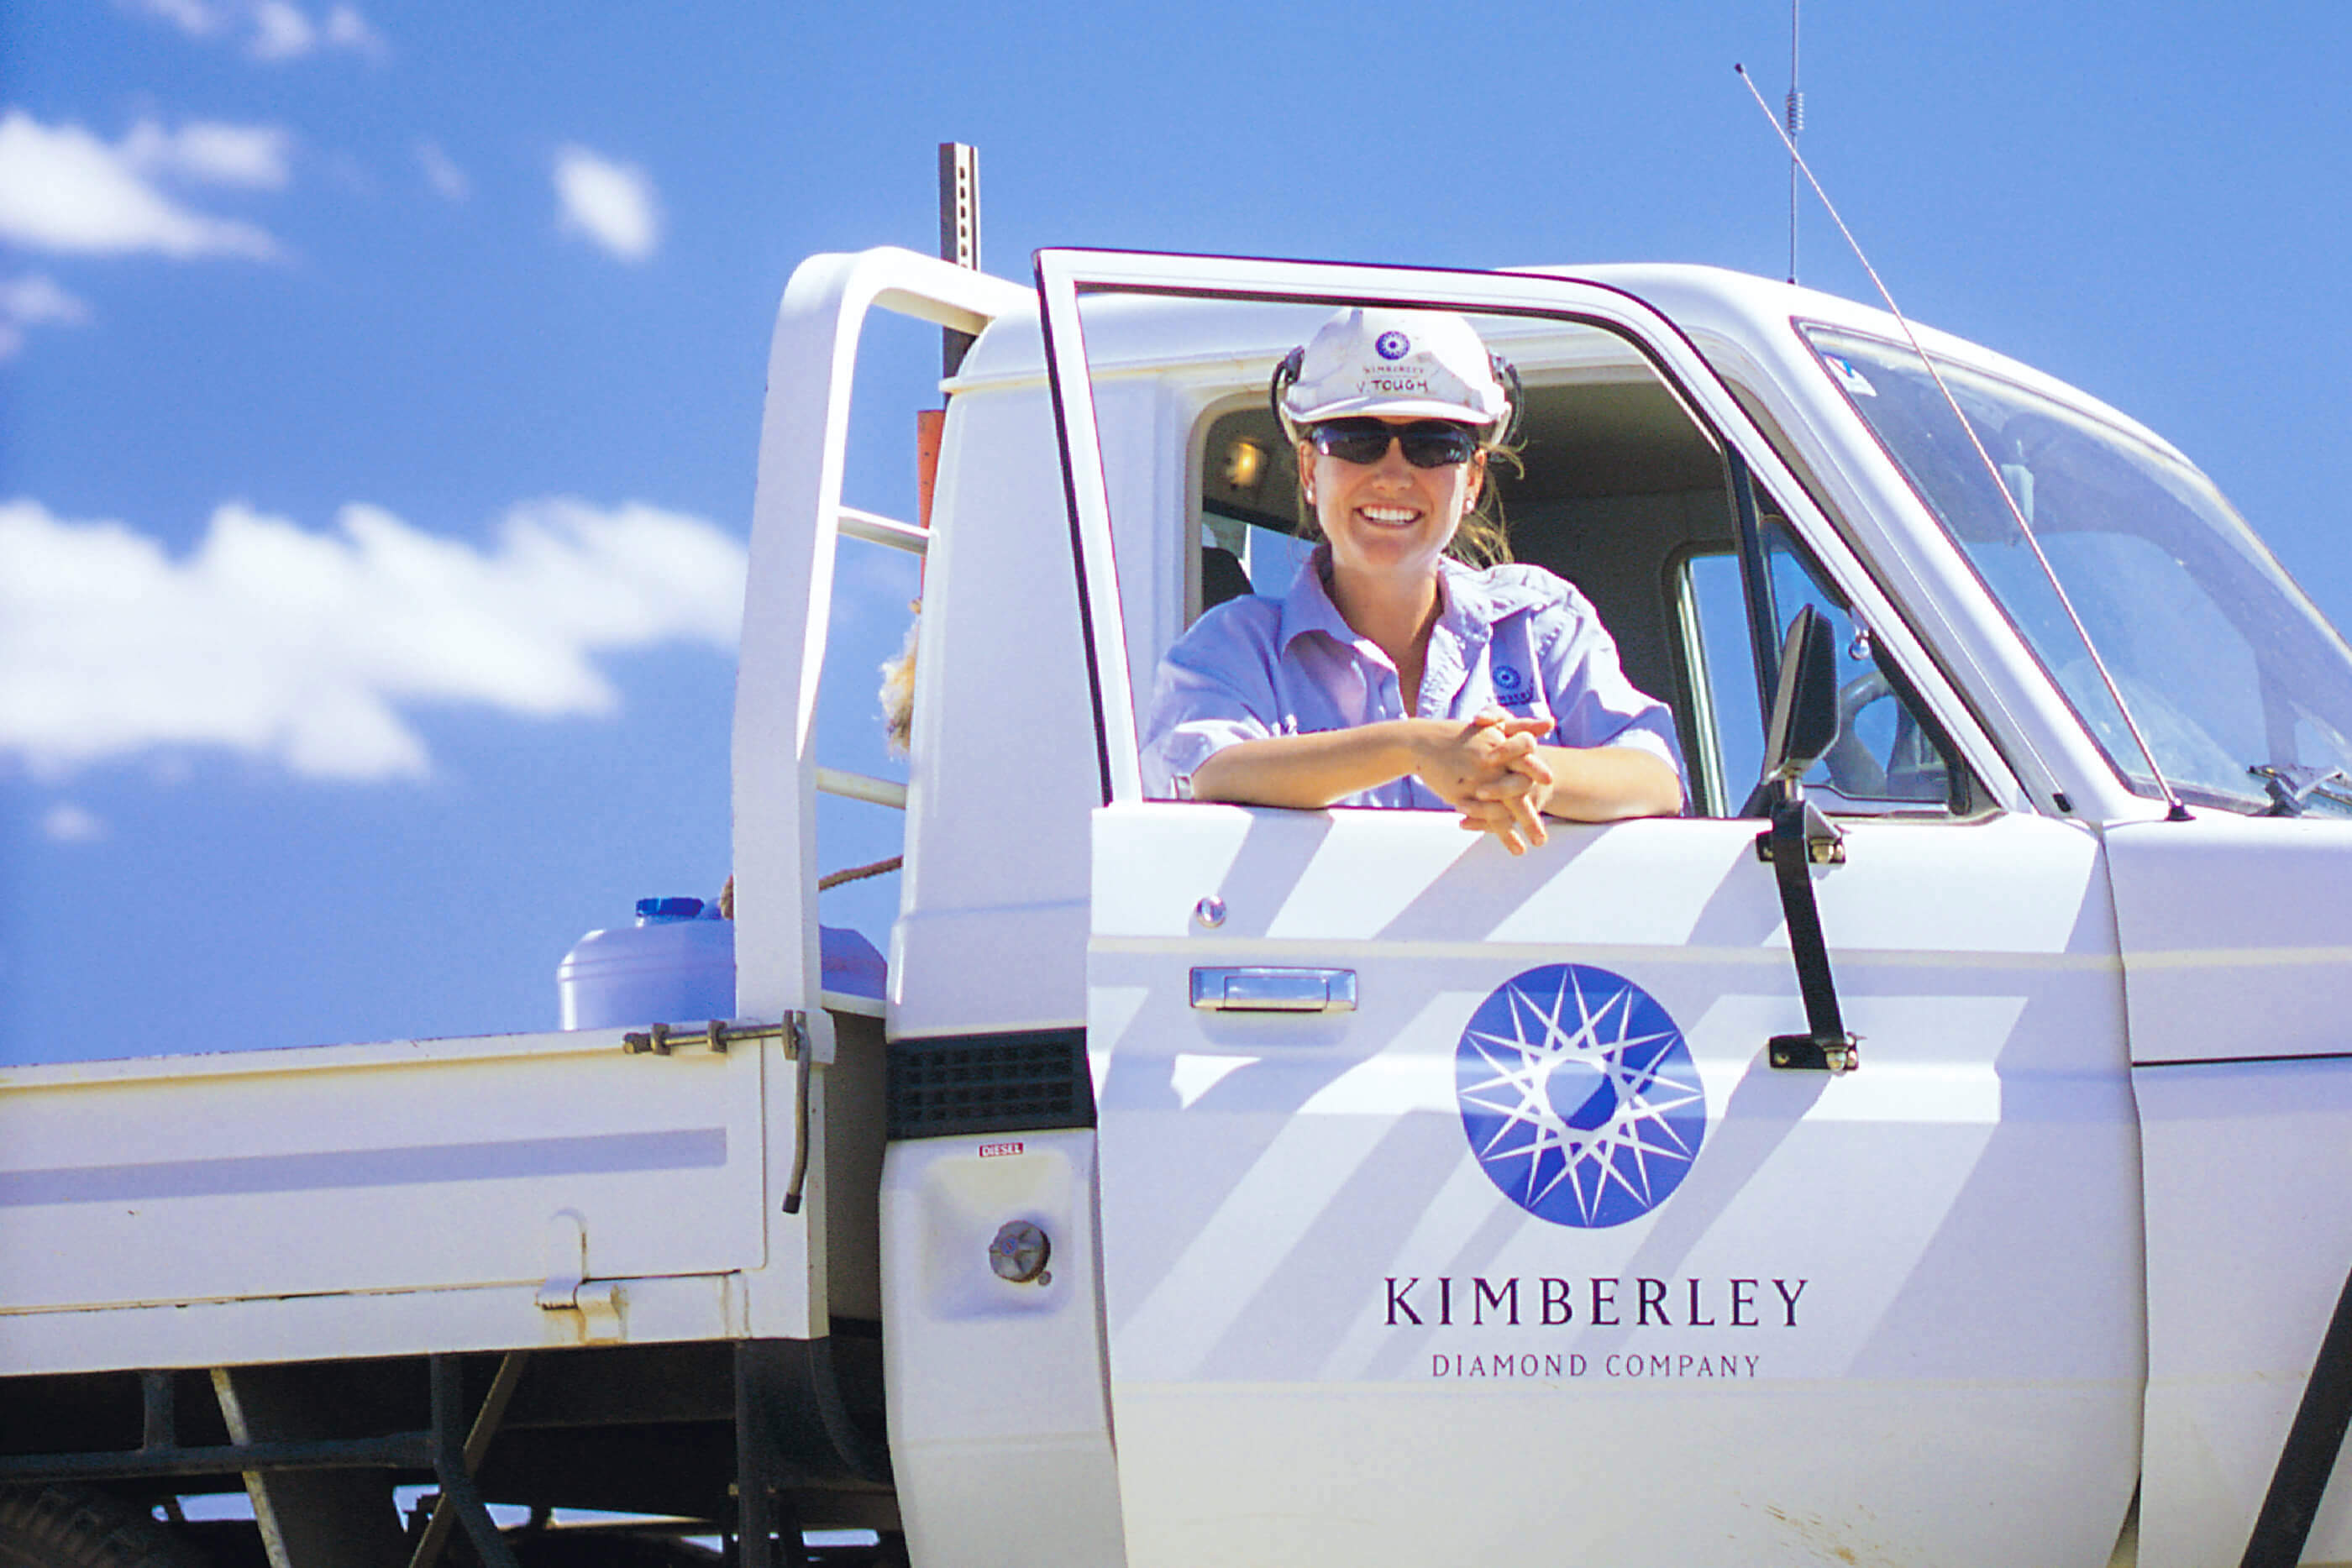 Kimberley-Diamonds-Vehicle